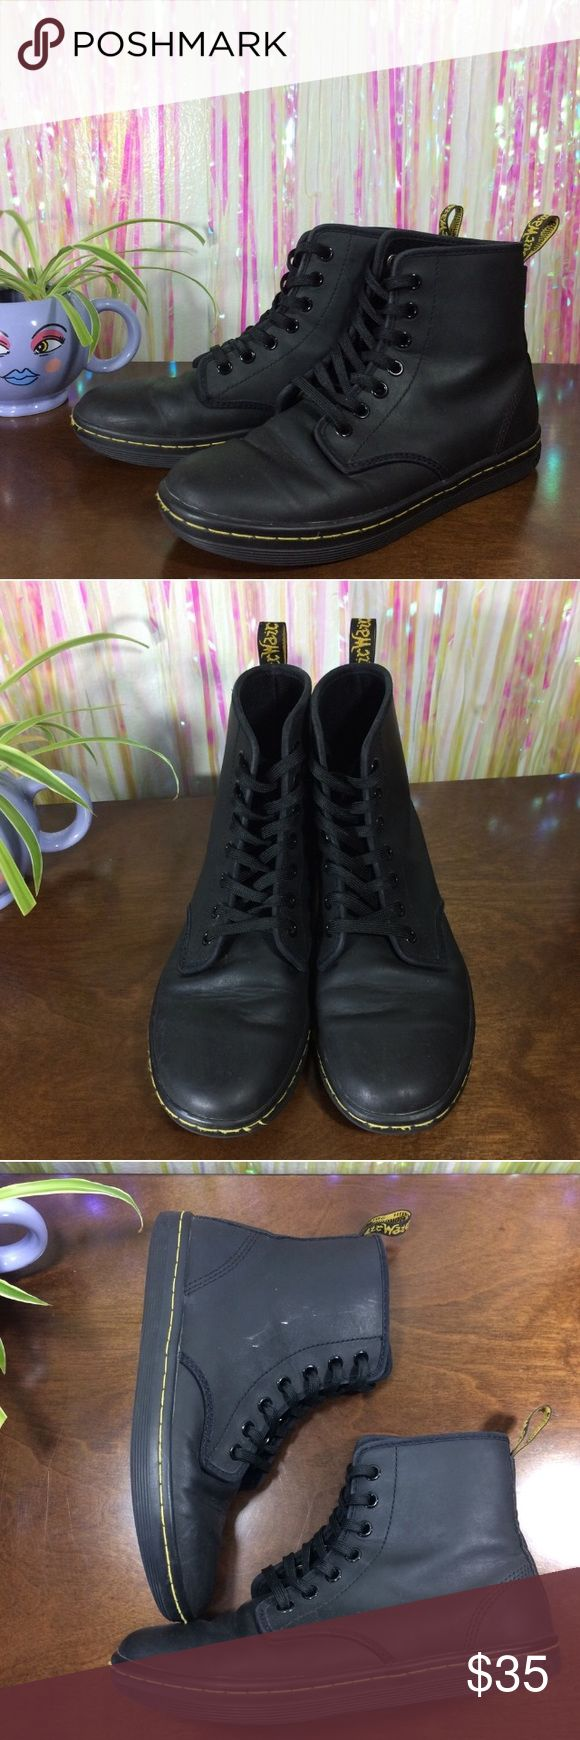 """Dr. Martens Shoreditch Sneaker Boots UK 4. US Women's 6. Retail $90. Black soft matte leather. Normal creasing. Signs of wear on heels. Rub off on inner sides & tongue. Piling in interior. Reflected in price. Relisted since previous buyers account was deleted.  Insole - 9.5""""  *I'm not responsible for the fit of an item*  🚫 I don't discuss prices through comments, please use the offer button!  ⚡️ Same-day or next-day shipping 📬 All packages handled with care 👽 Follow for new items & sale…"""